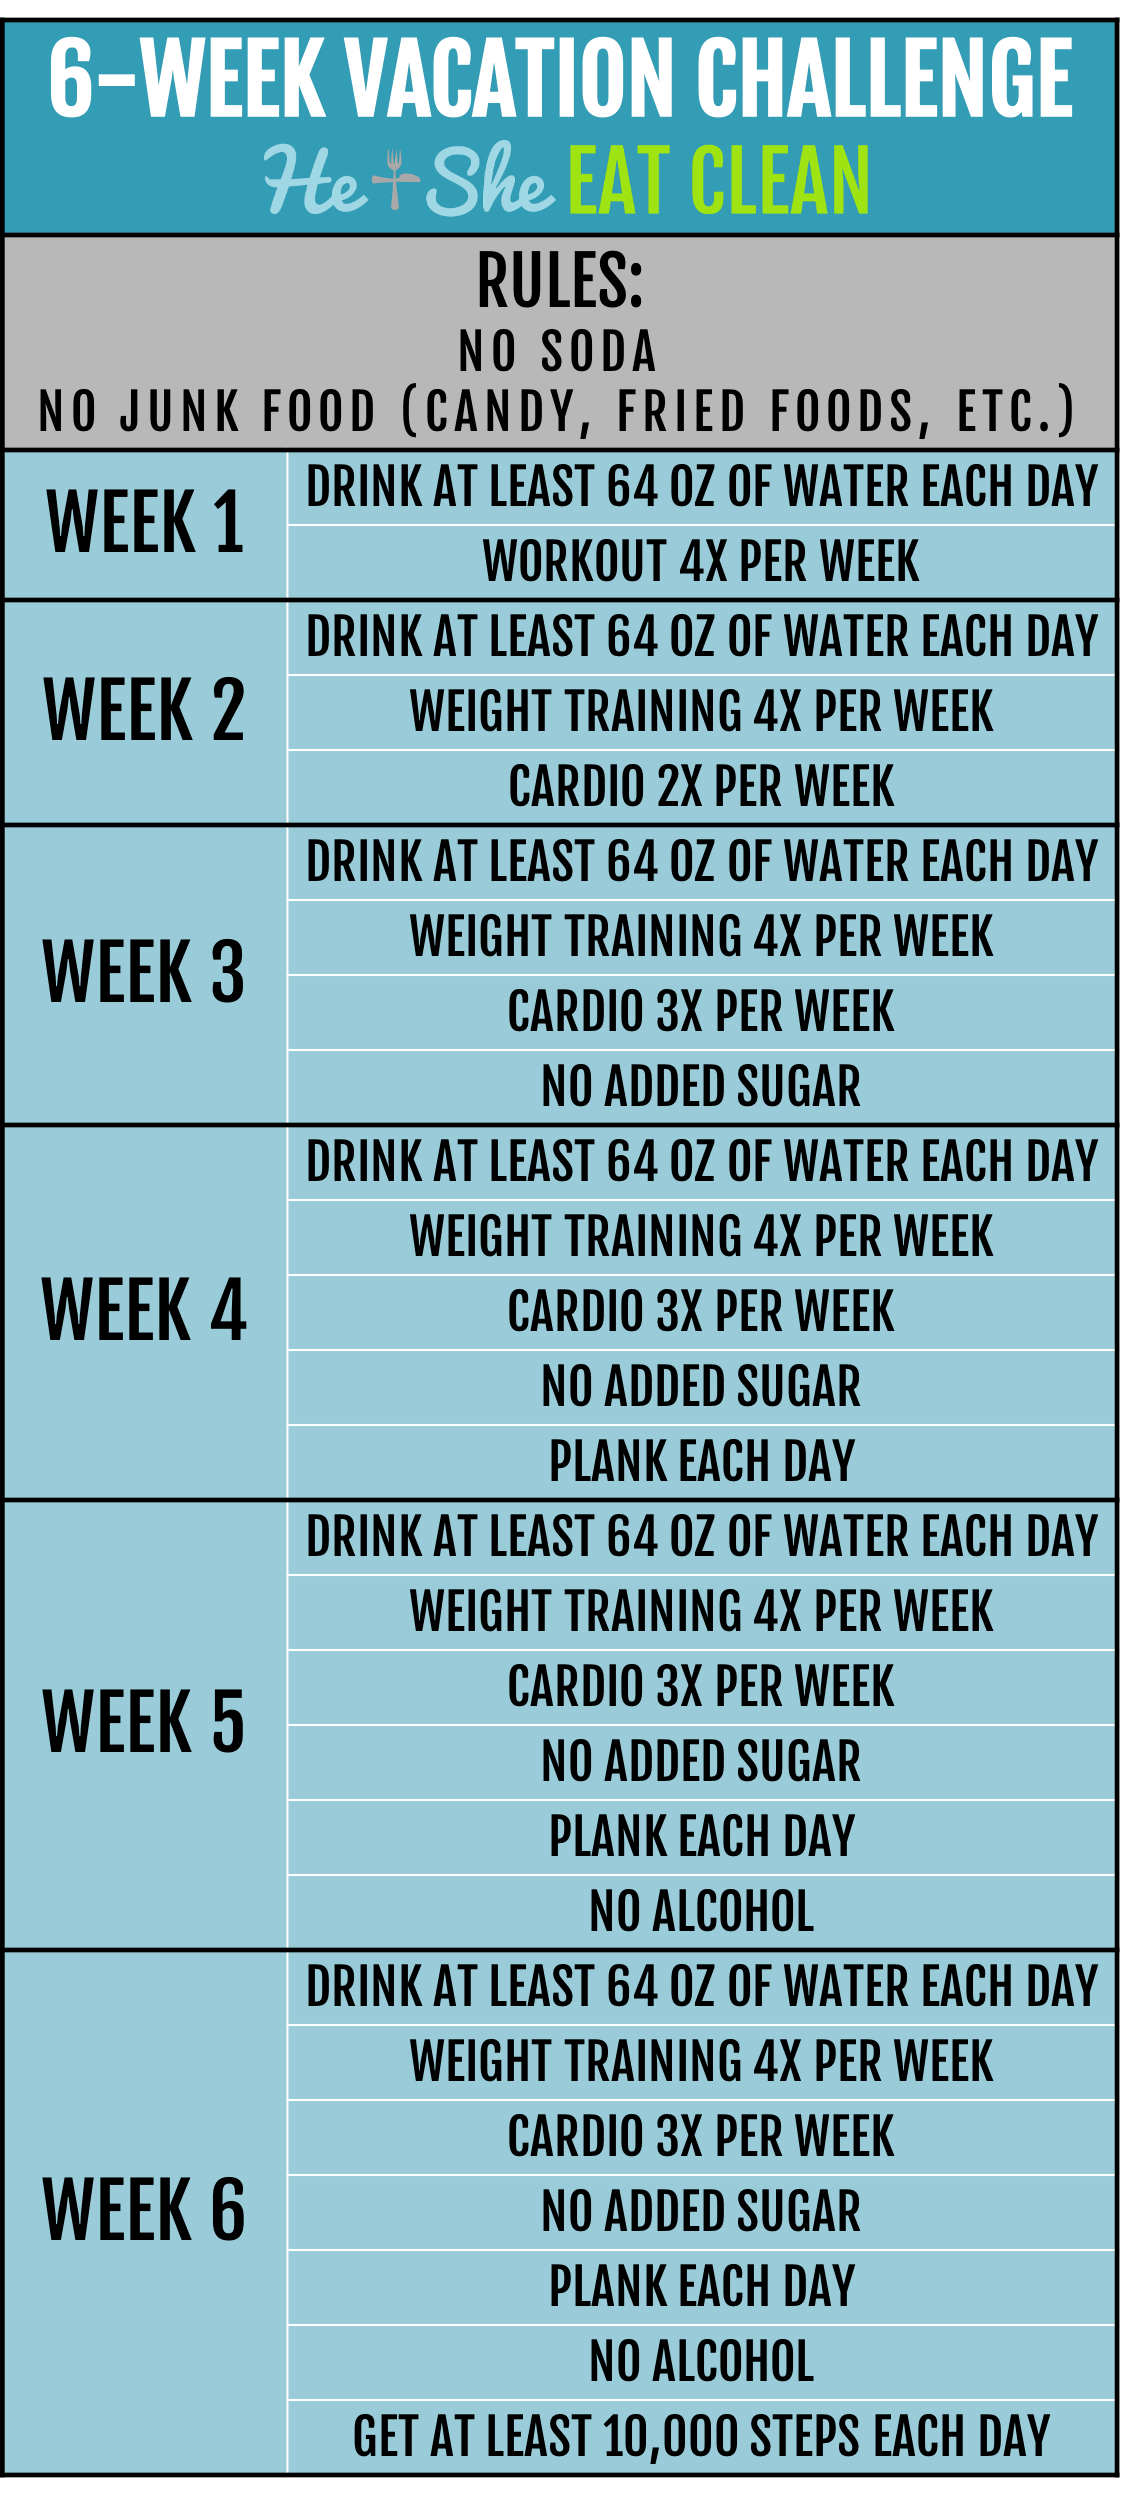 Need a little challenge to get your rear in gear? Try this simple and  easy-to-follow 6-Week Vacation Challenge from He and She Eat Clean!